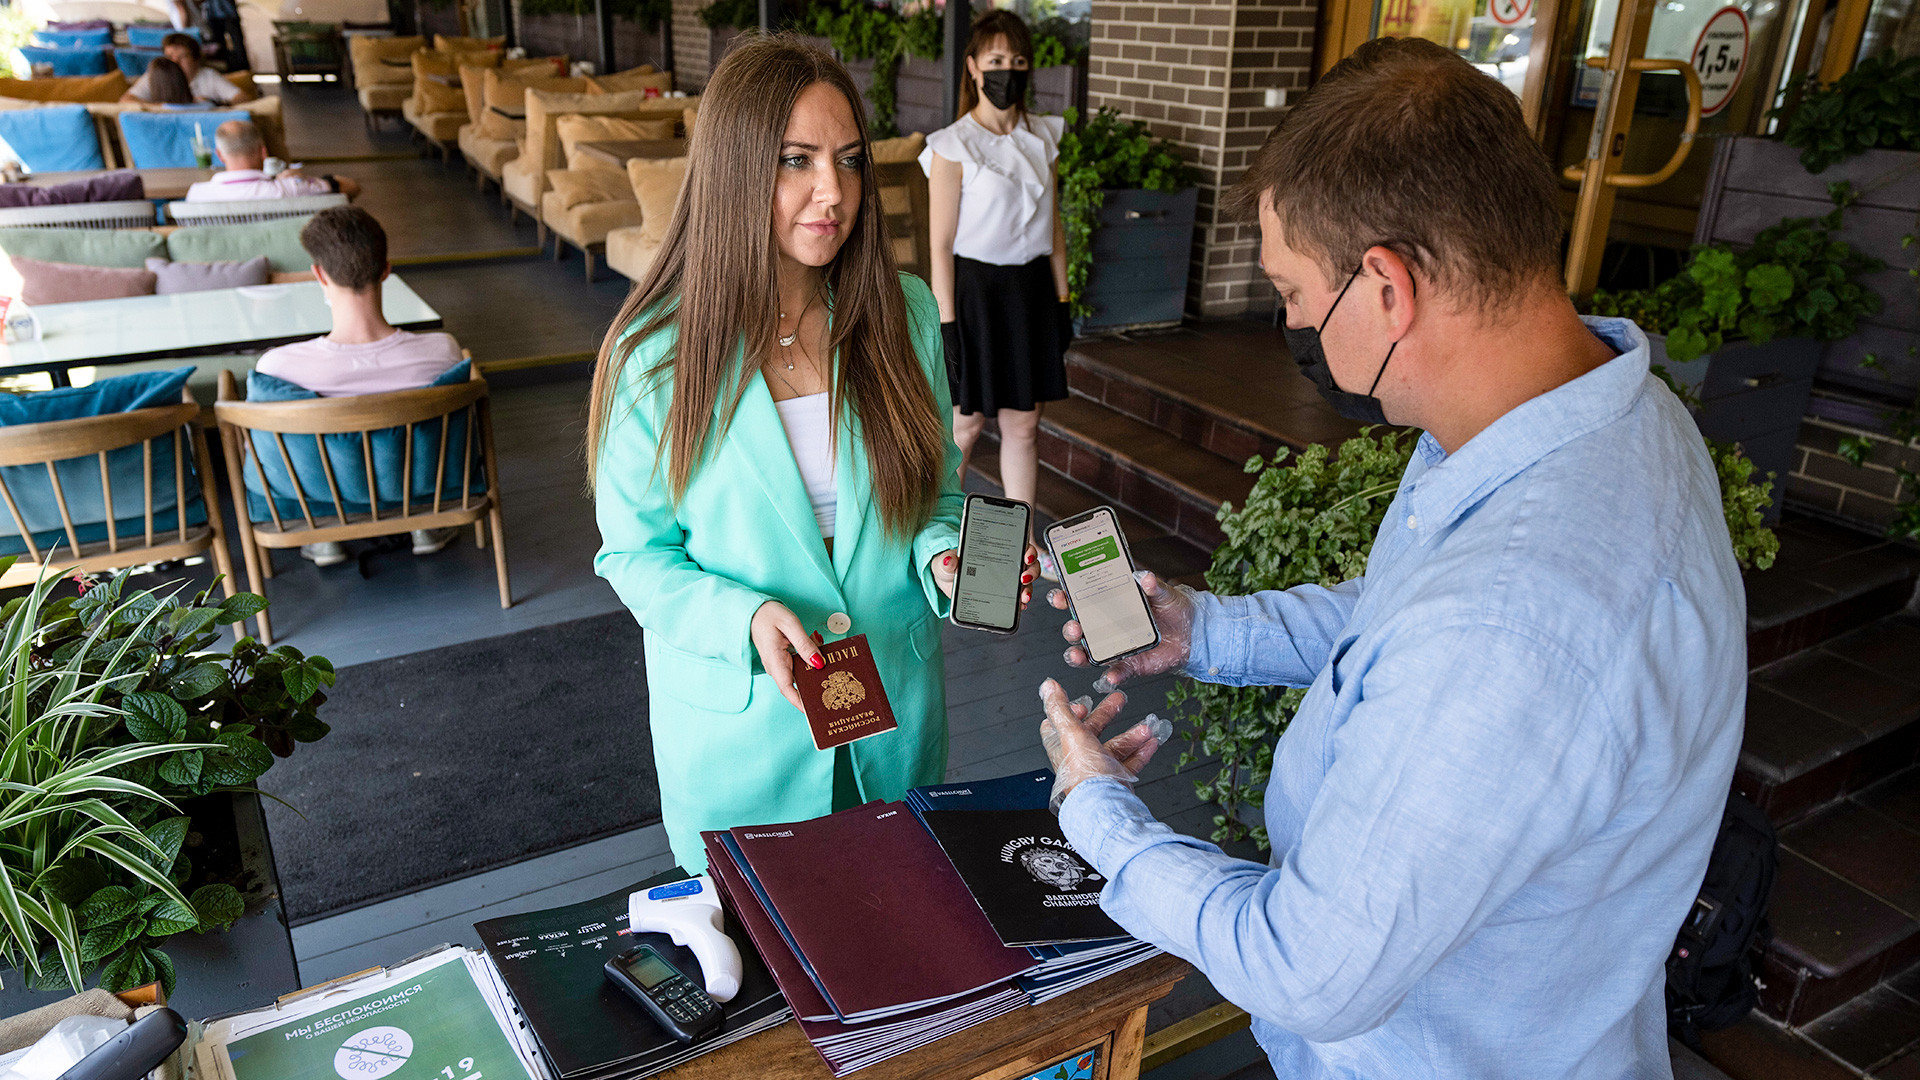 A restaurant employee checks a visitor's COVID-19 vaccination QR code at the entrance of a restaurant in Moscow, Russia, Tuesday, June 22, 2021. As proof of vaccination for entering a restaurant, customers must visit a government website and get a QR code.